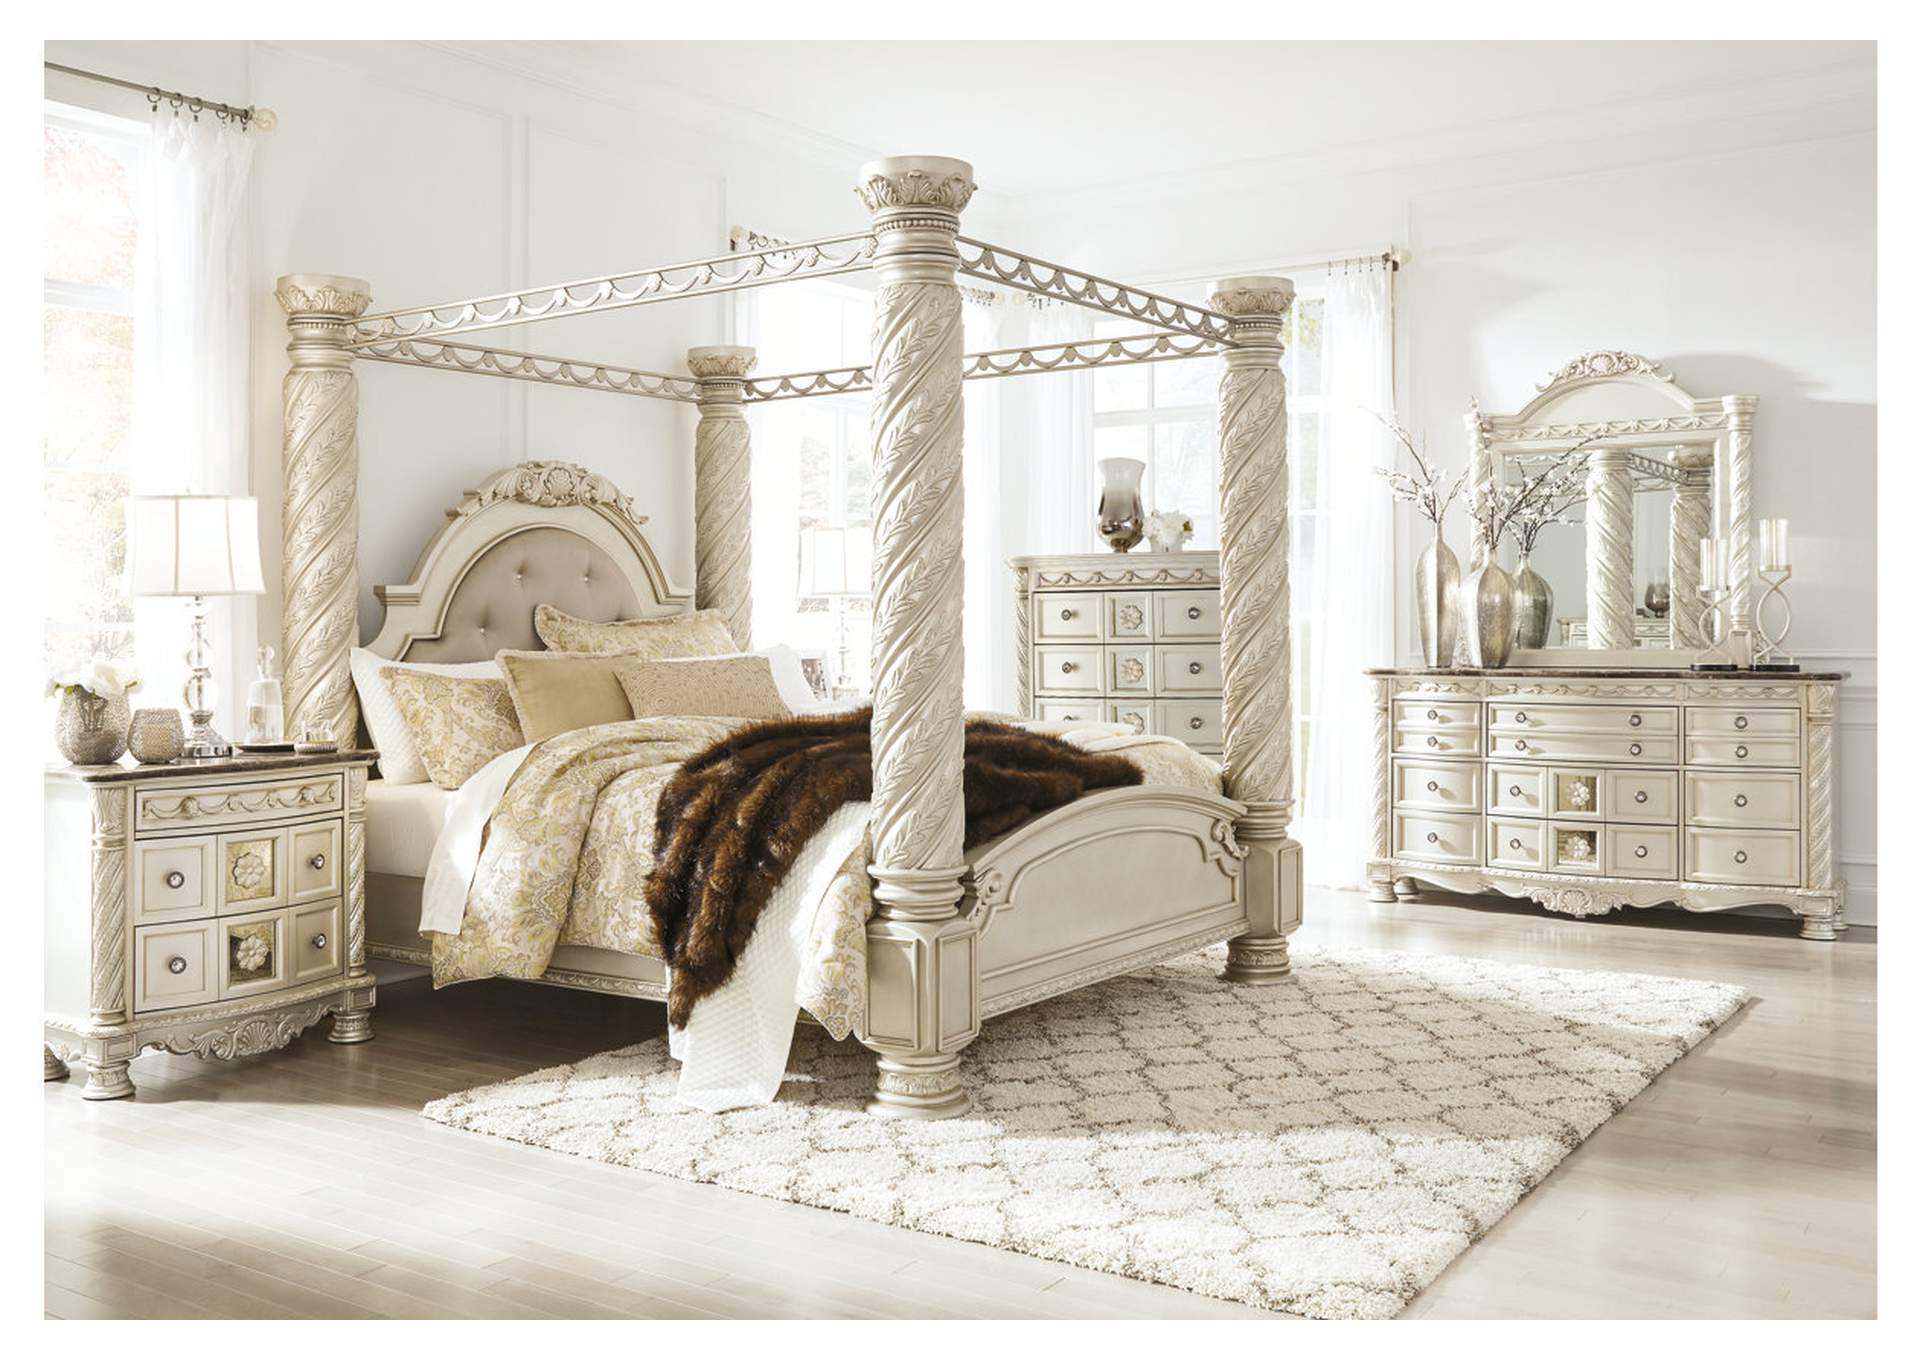 Cassimore Pearl Silver King Upholstered Canopy Bed w/Dresser, Mirror, Drawer Chest & Nightstand,Signature Design By Ashley